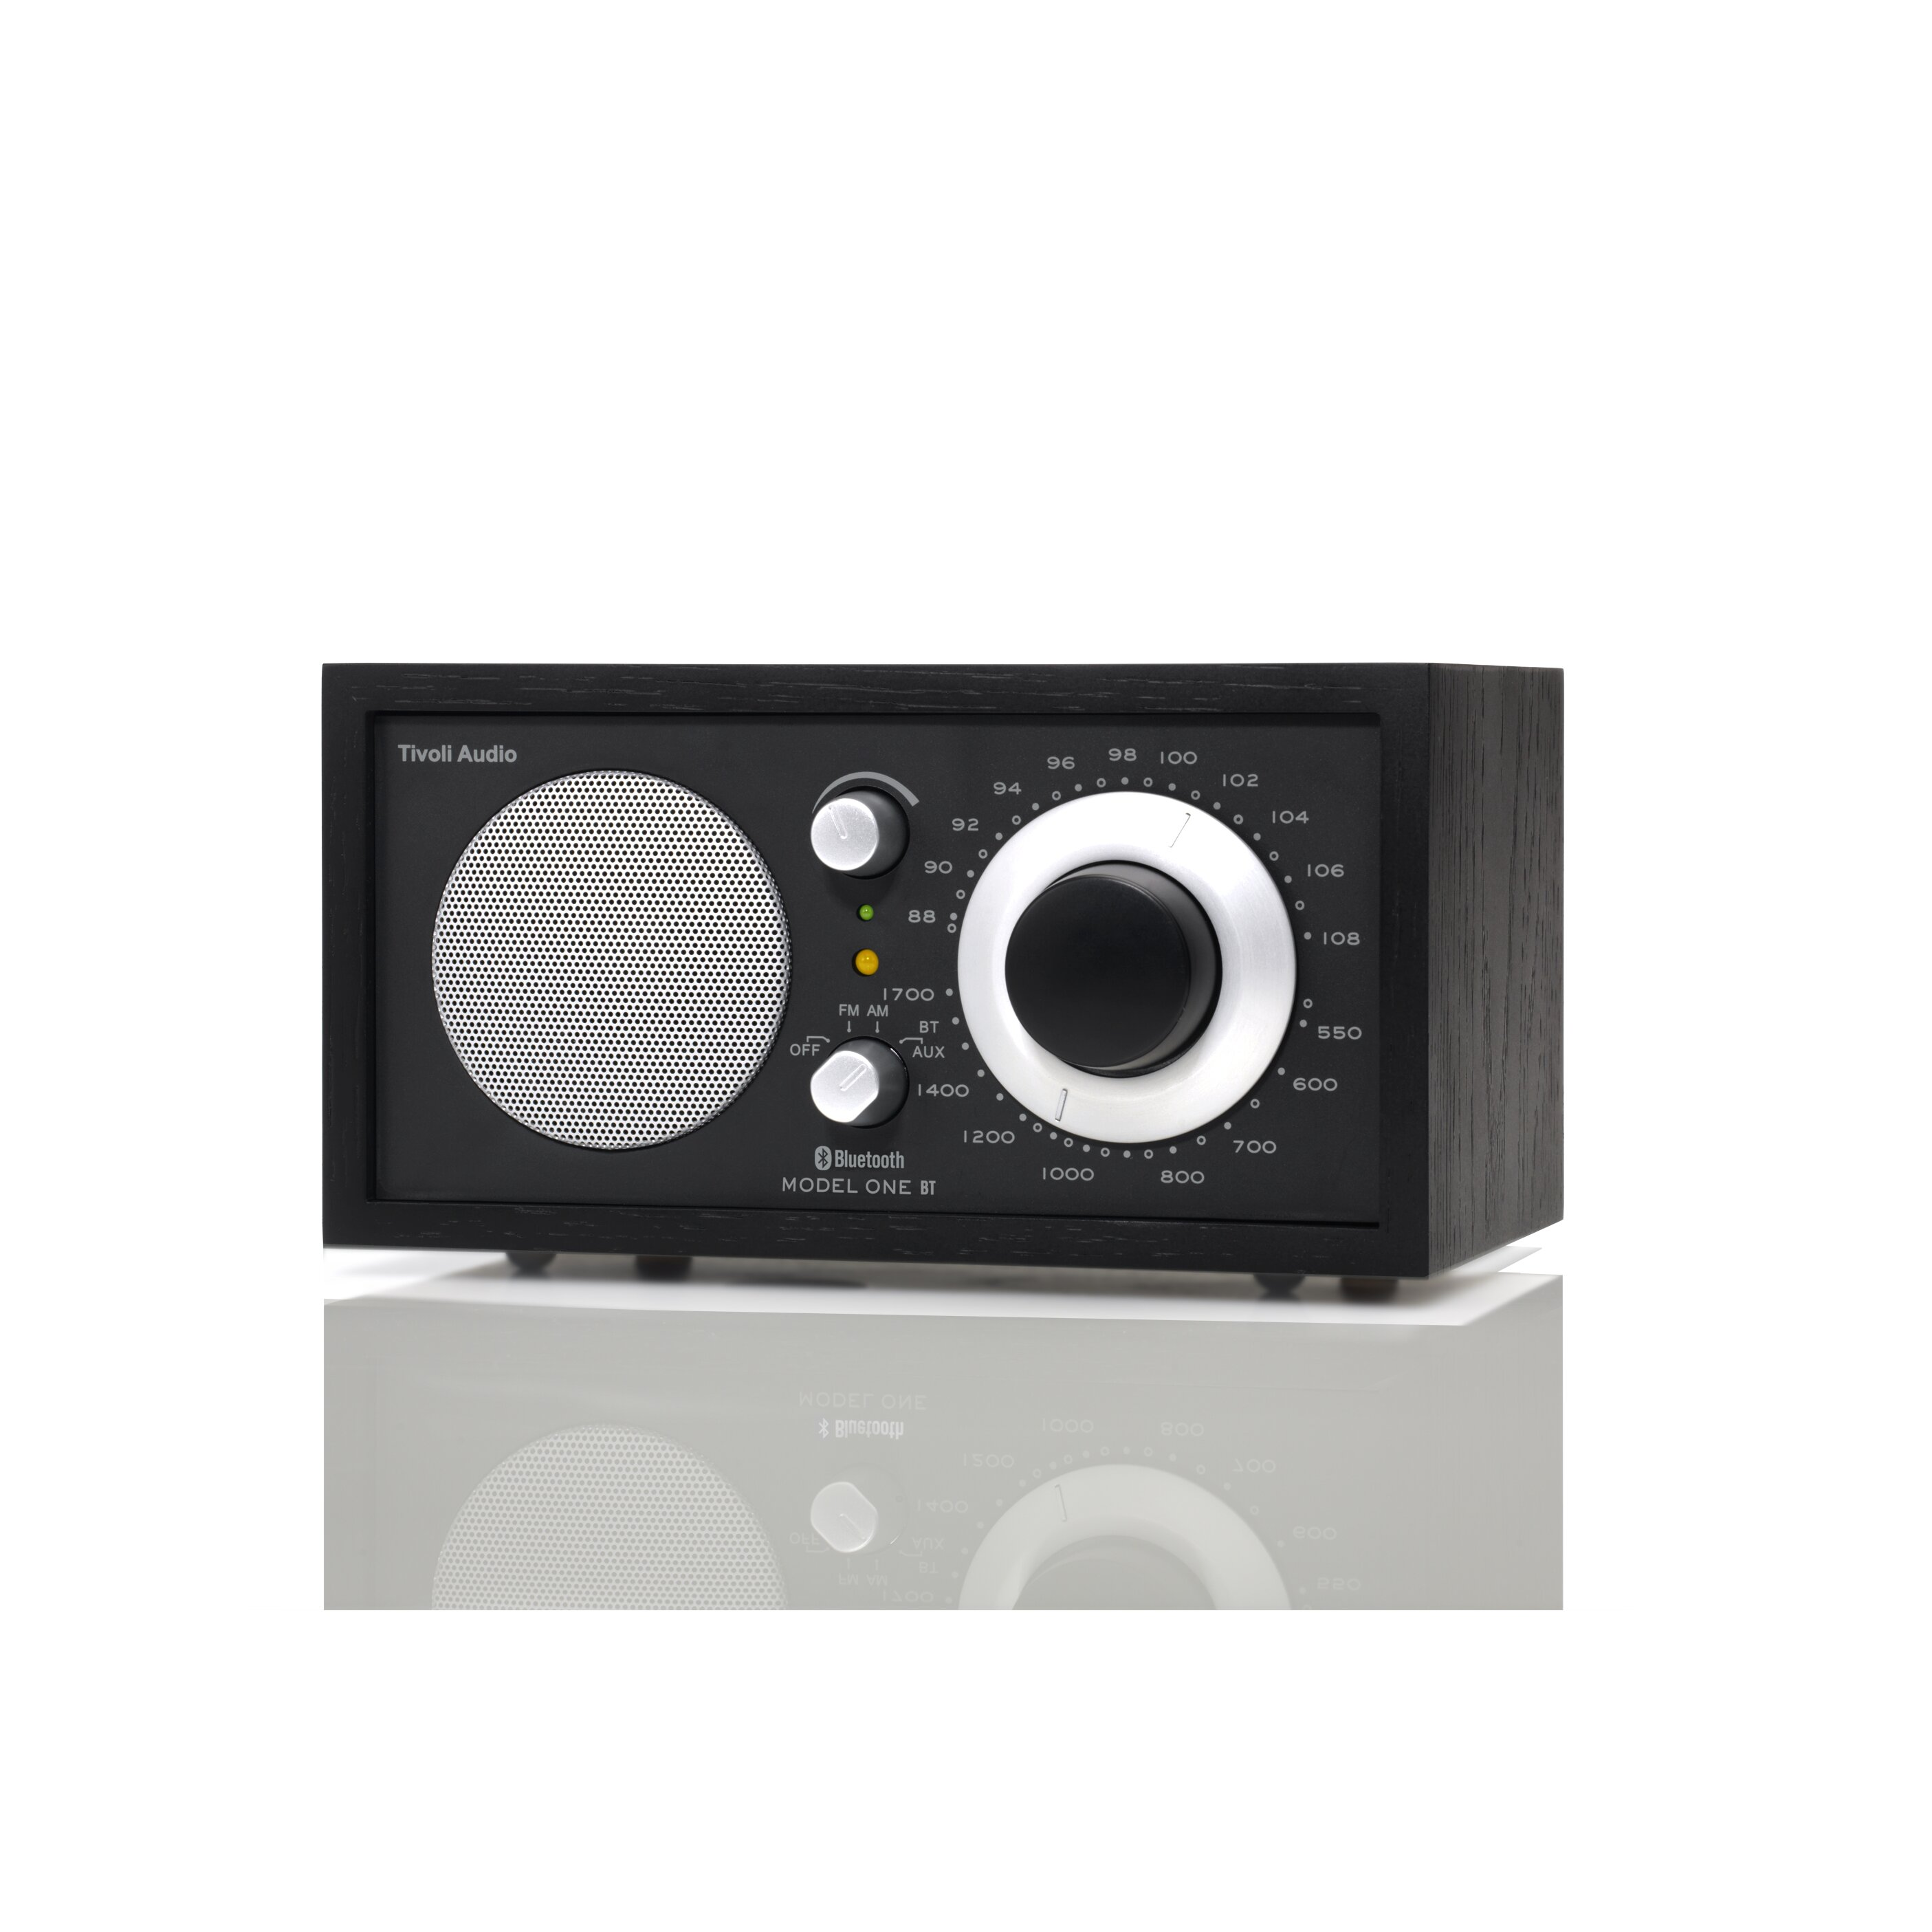 tivoli audio llc model one bluetooth am fm table radio reviews wayfair. Black Bedroom Furniture Sets. Home Design Ideas